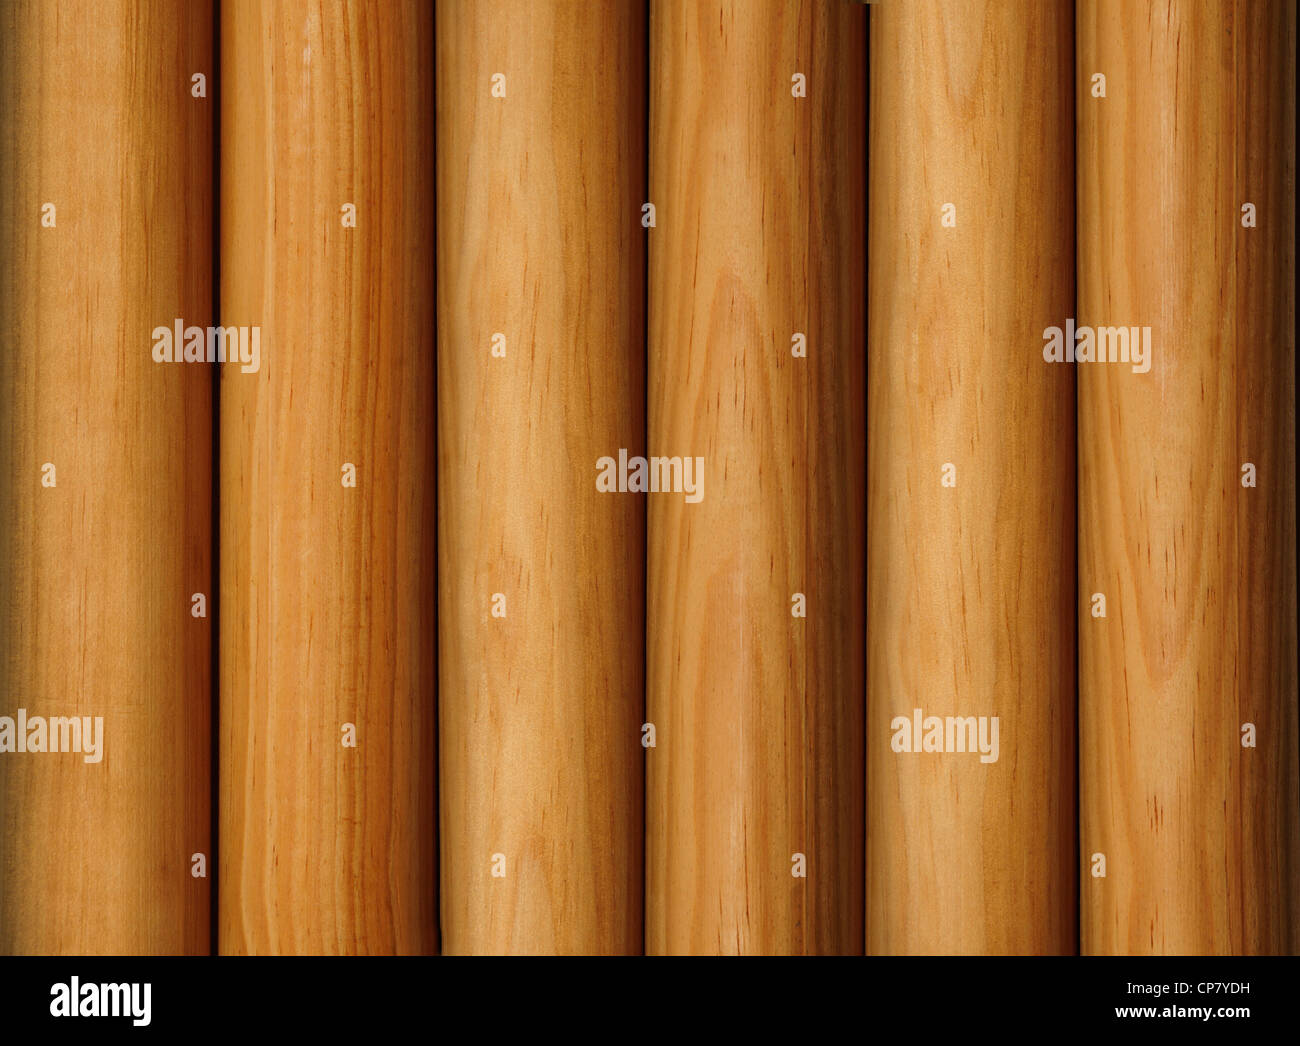 Wooden poles forming a background texture - Stock Image